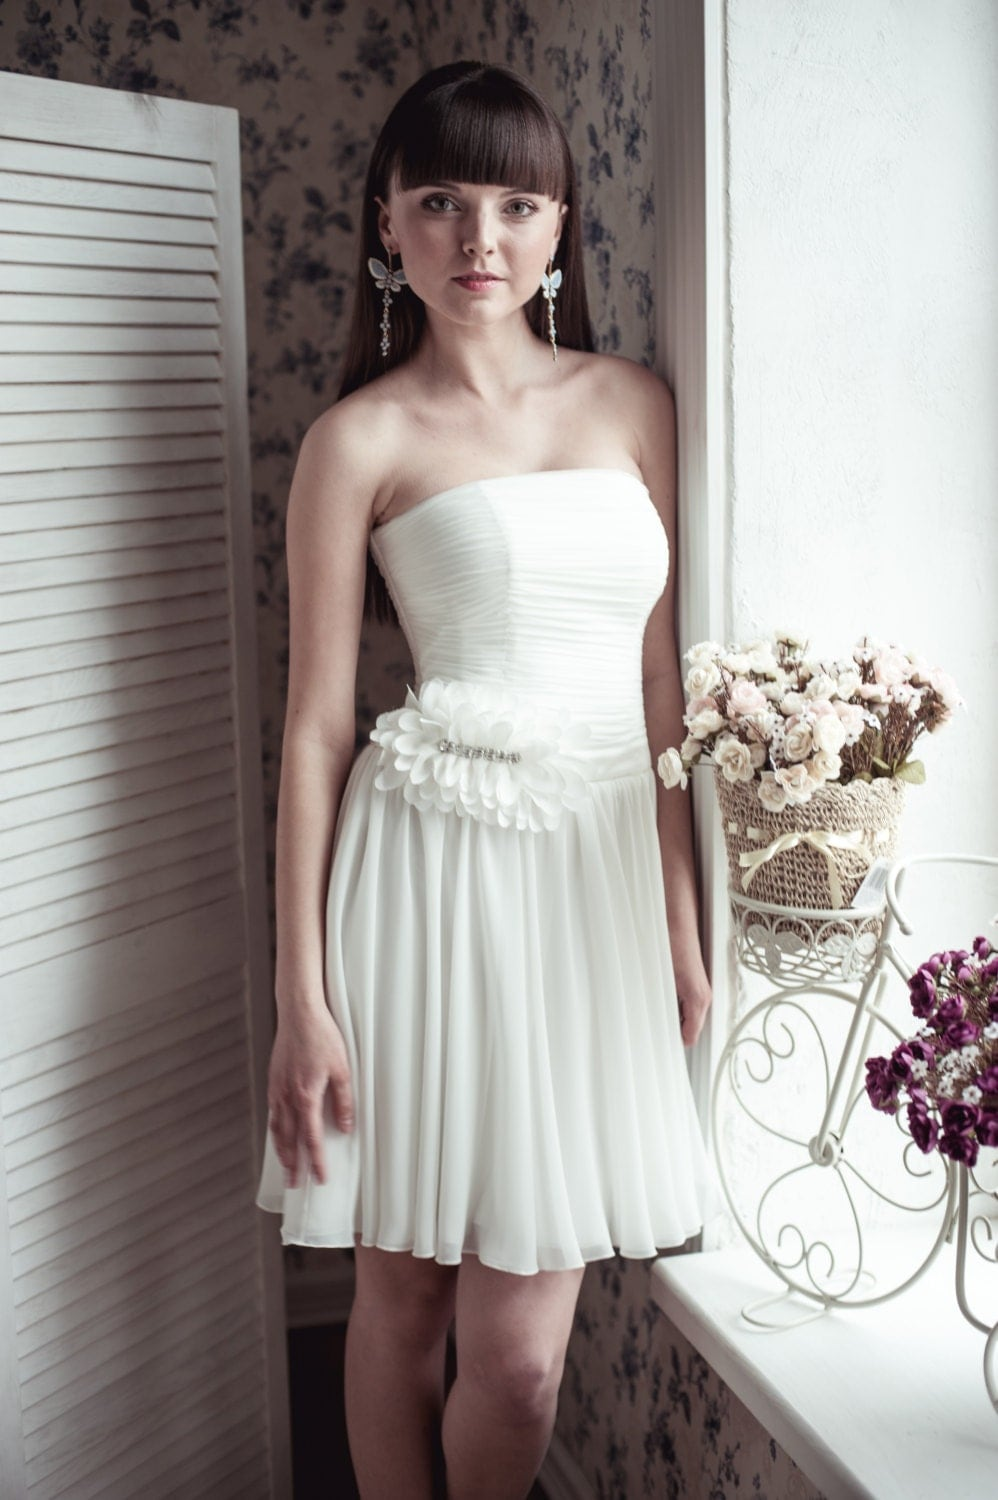 Black friday short wedding dress m14 romantic wedding gown for Black friday wedding dresses